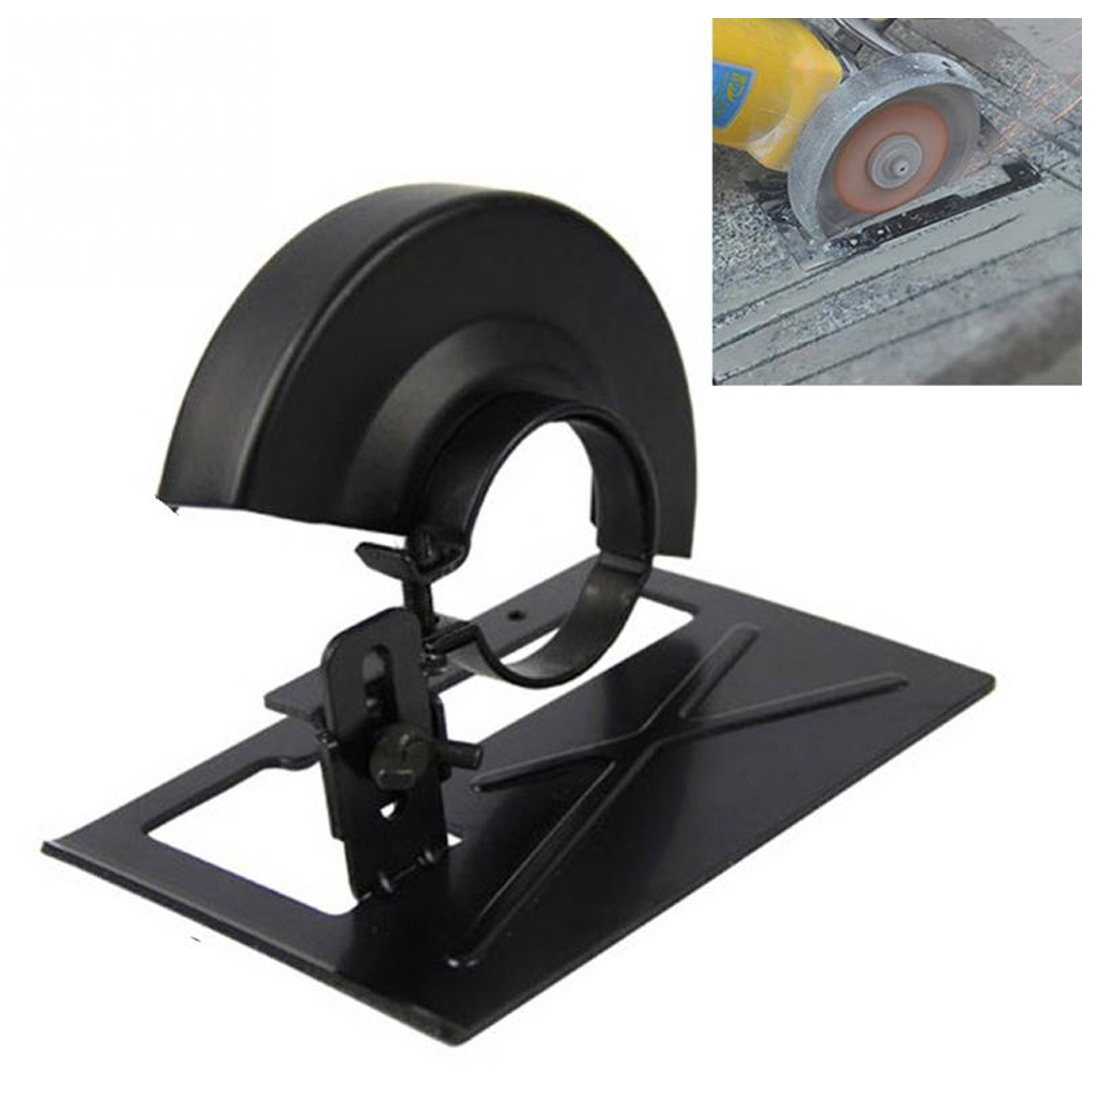 PEGASI 1pc Angle Grinder Dedicated Cutting Seat Stand Machine Bracket Rod Table+1pc Cover Shield Safety Woodworking Tools